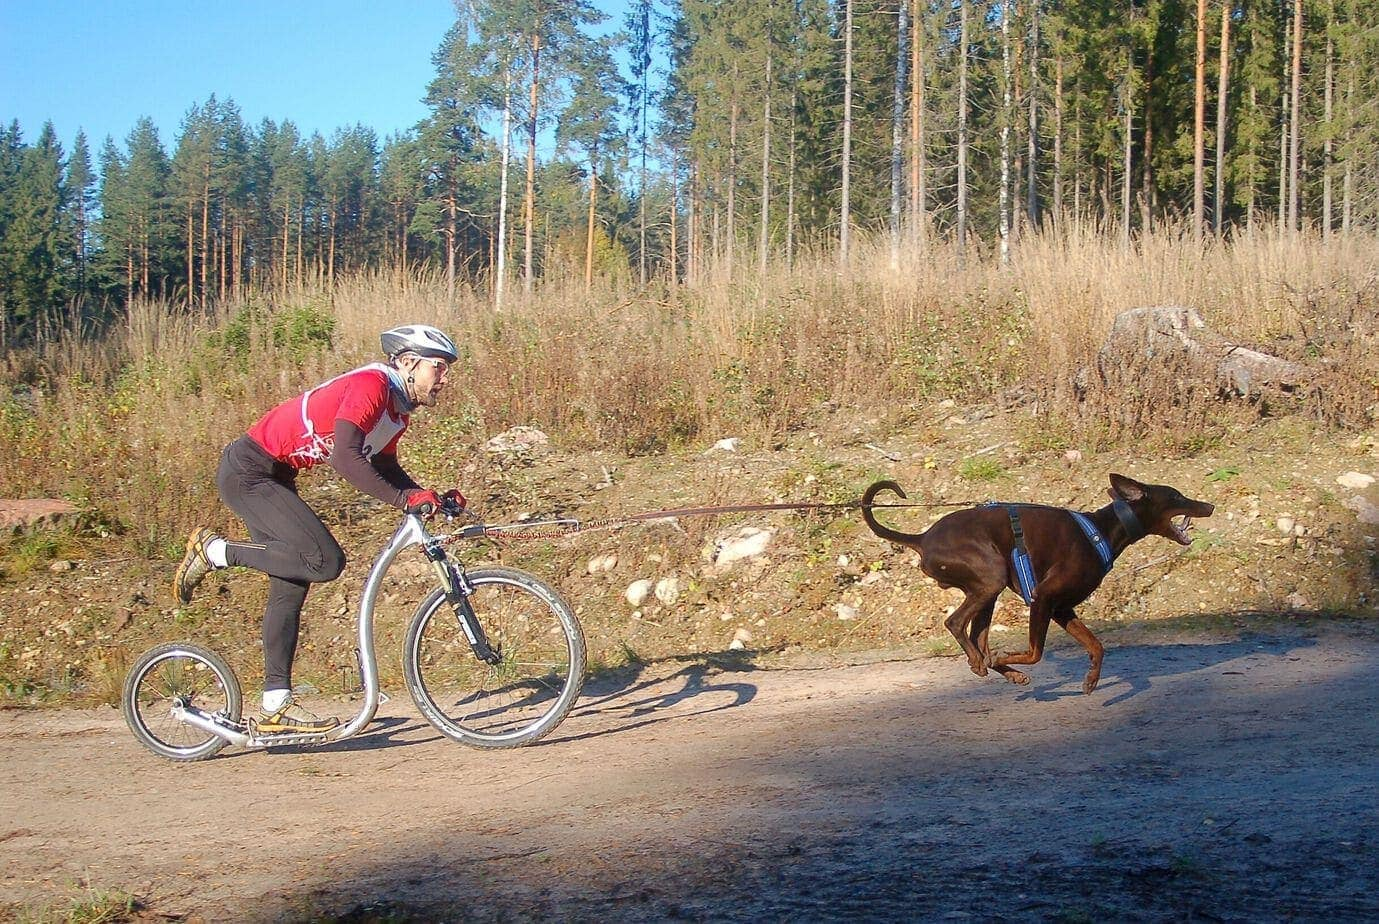 Dog-Scooter-Mushing-Hunde-Sport-Tretroller-Erwachsene